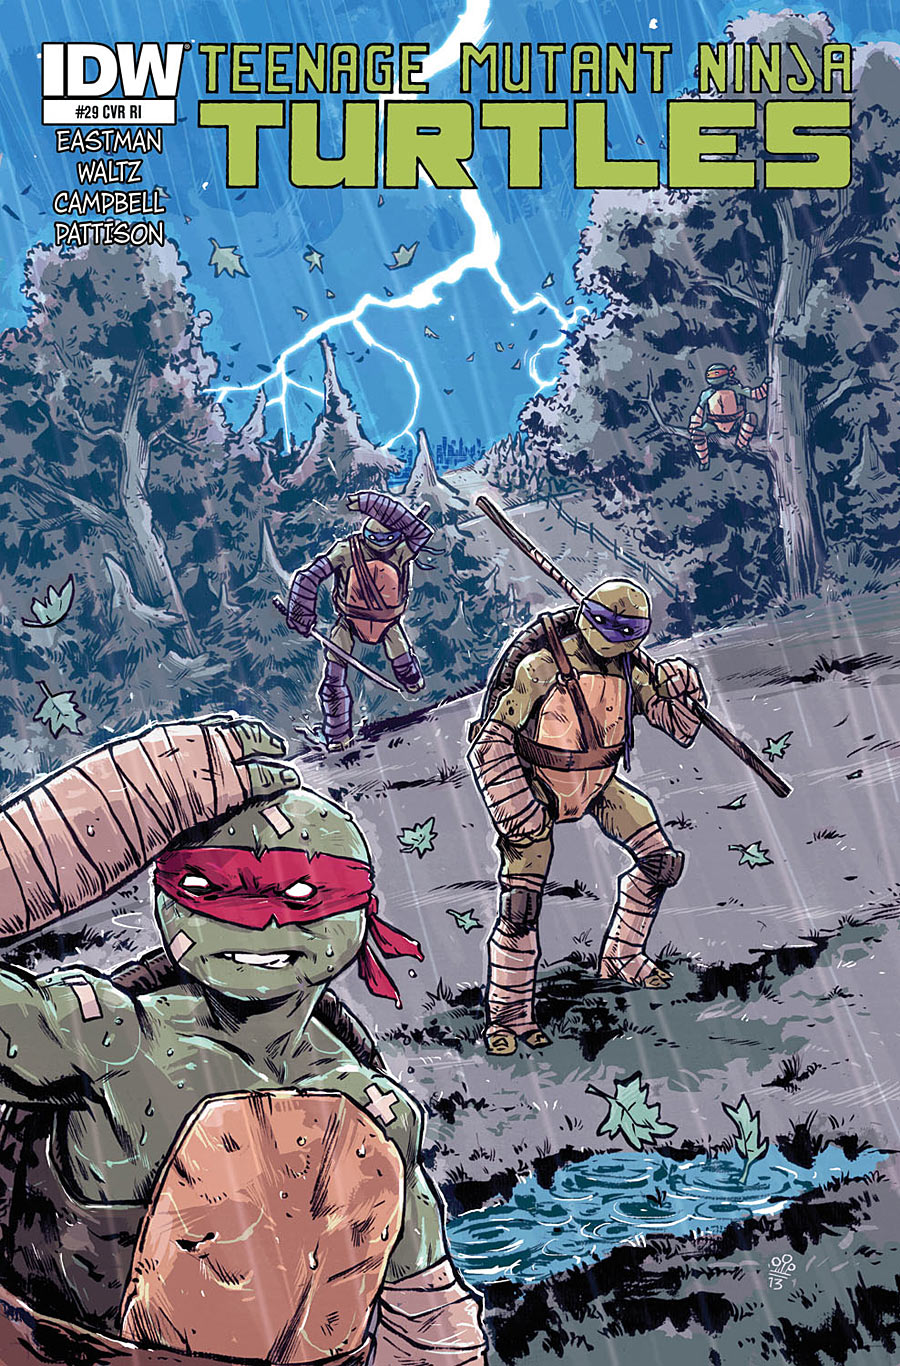 tmnt__29_variant_cover_by_thewoodenking-d6m9hvv.jpg